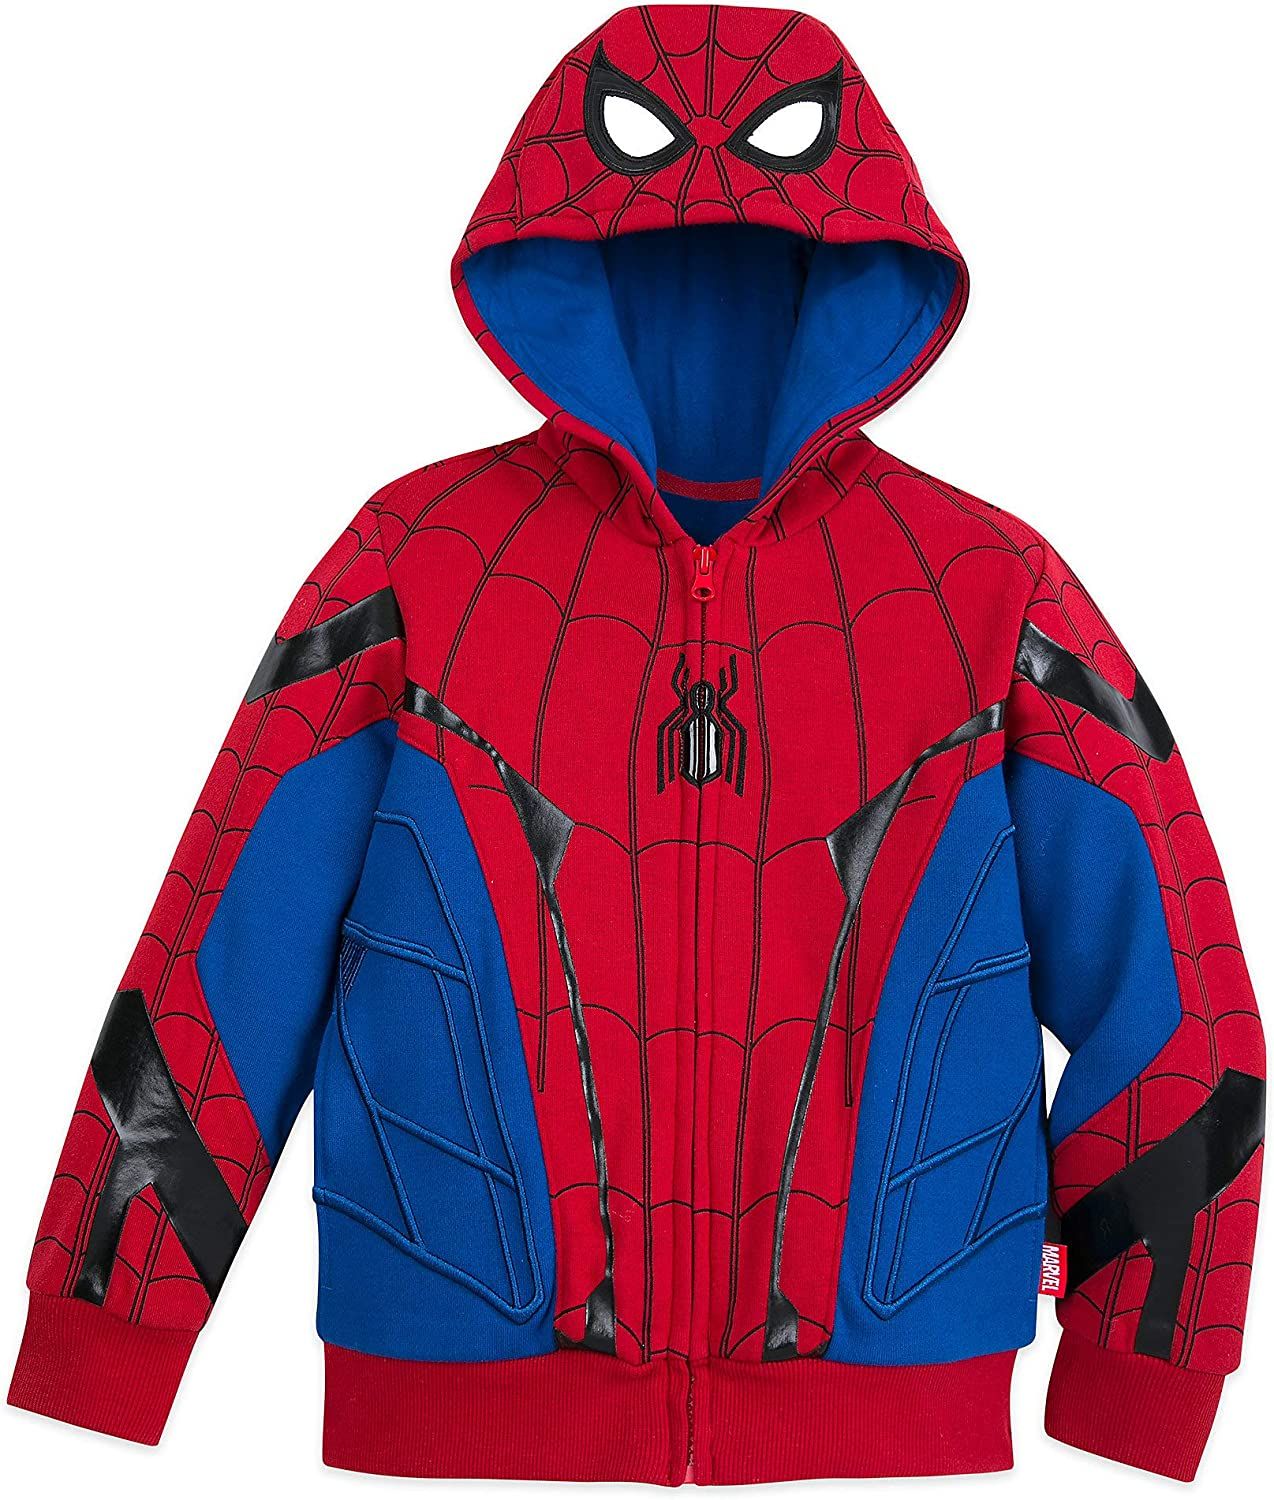 Blue Marvel Spider-Man Winter Jacket for Kids